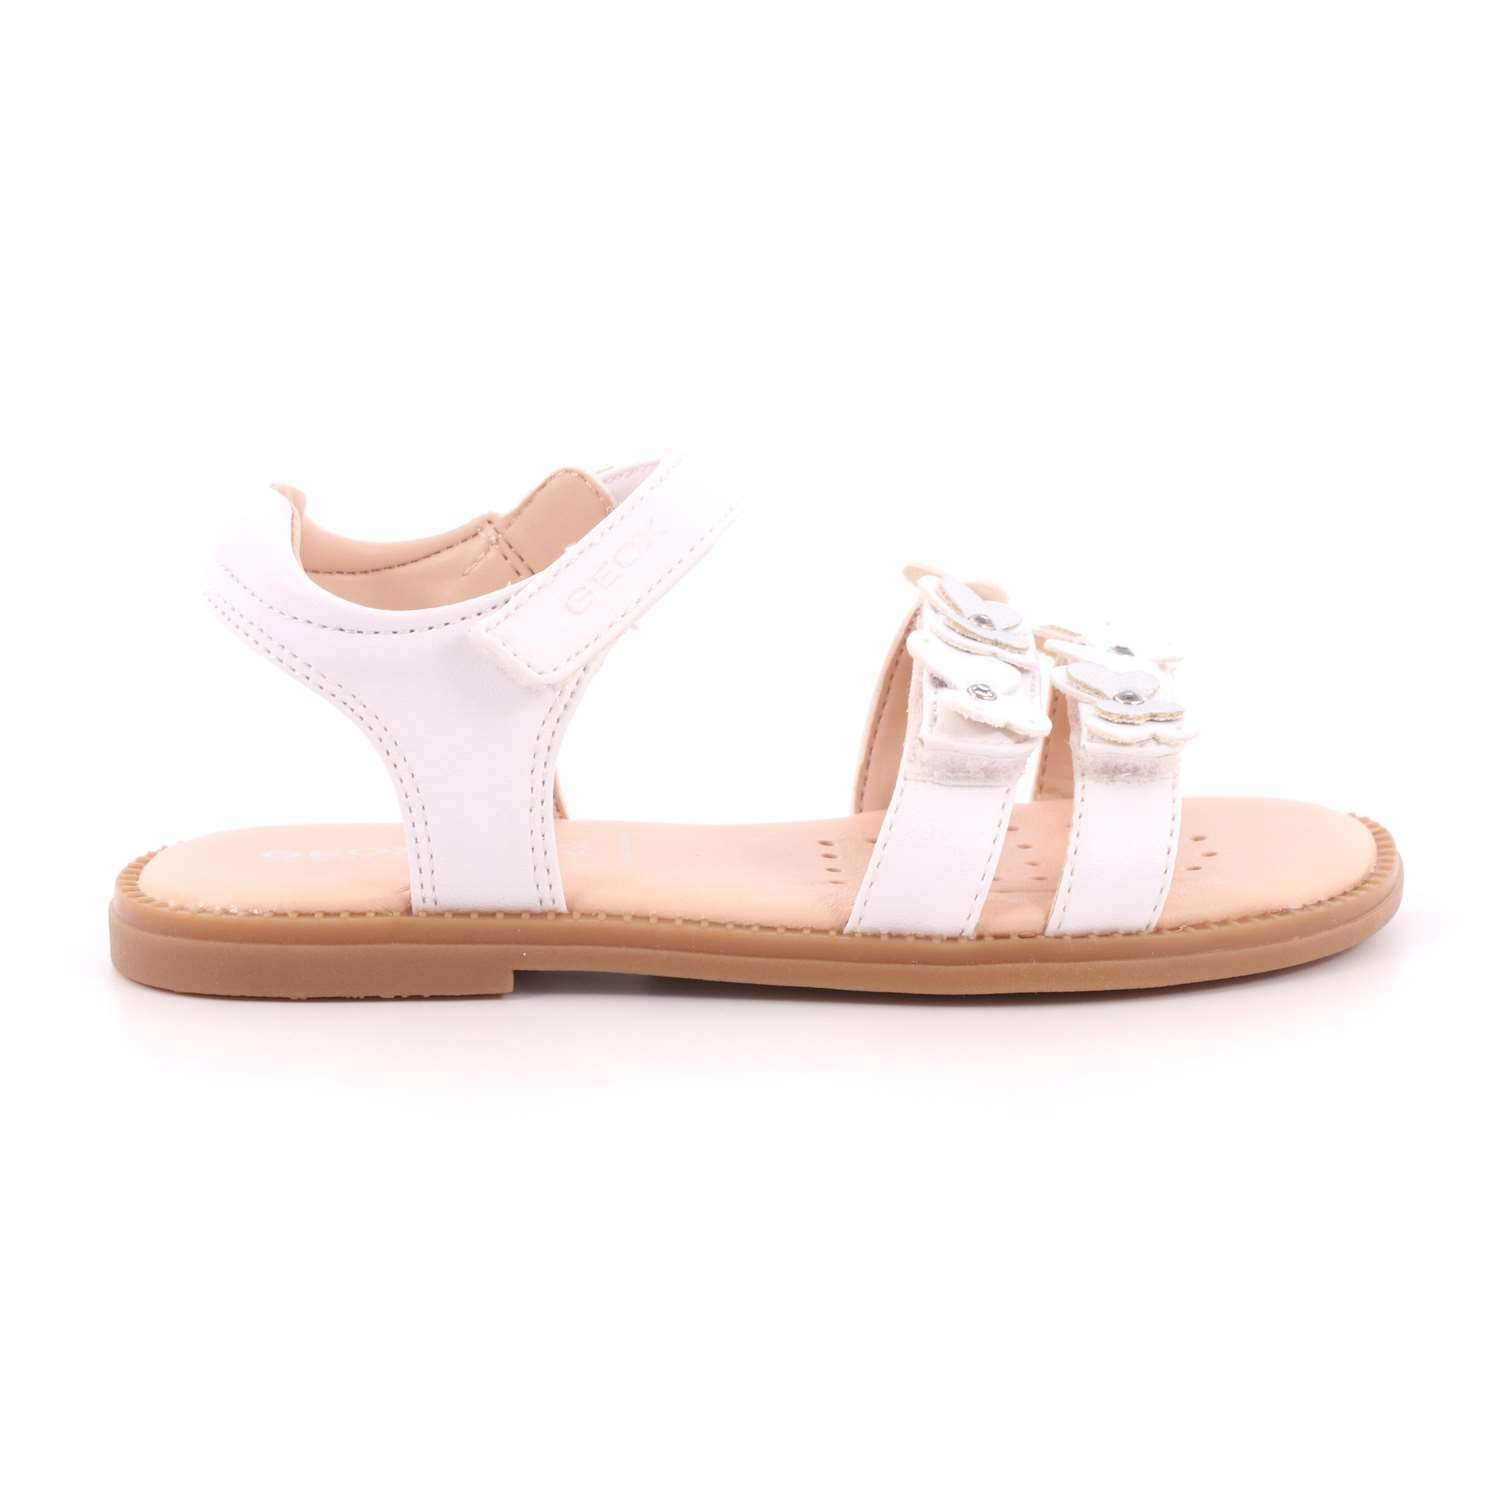 c70910d876fbe3 Geox Junior Karly Butterfly Girls Sandals 24 M EU  8 M US Toddler  White Silver SS17  Amazon.ca  Shoes   Handbags